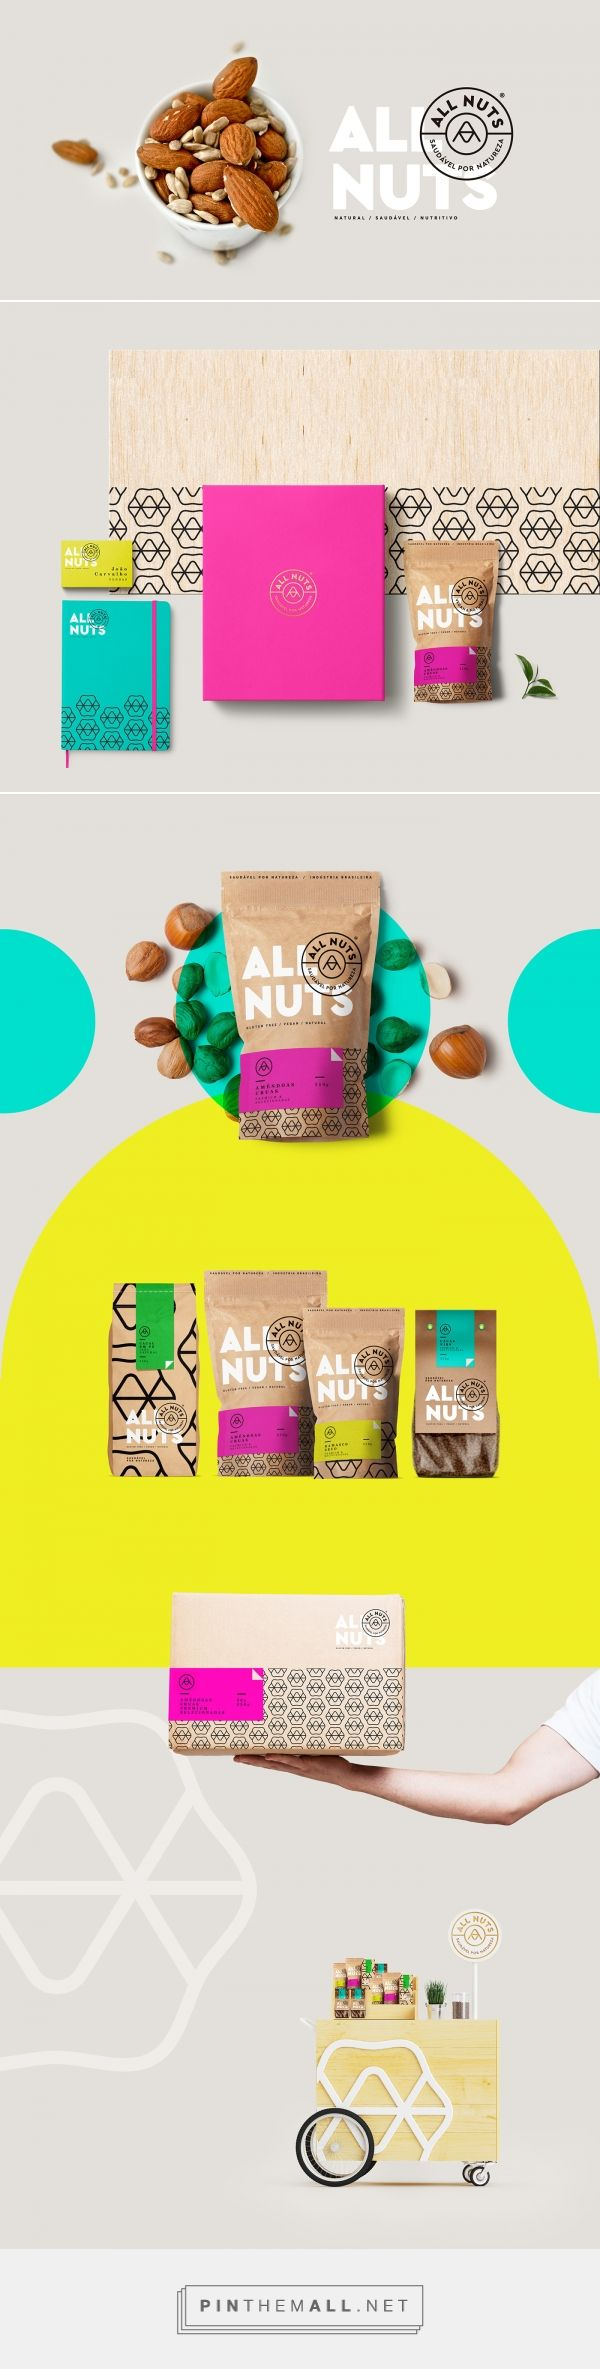 All Nuts Branding and Packaging by Sweety & Co.